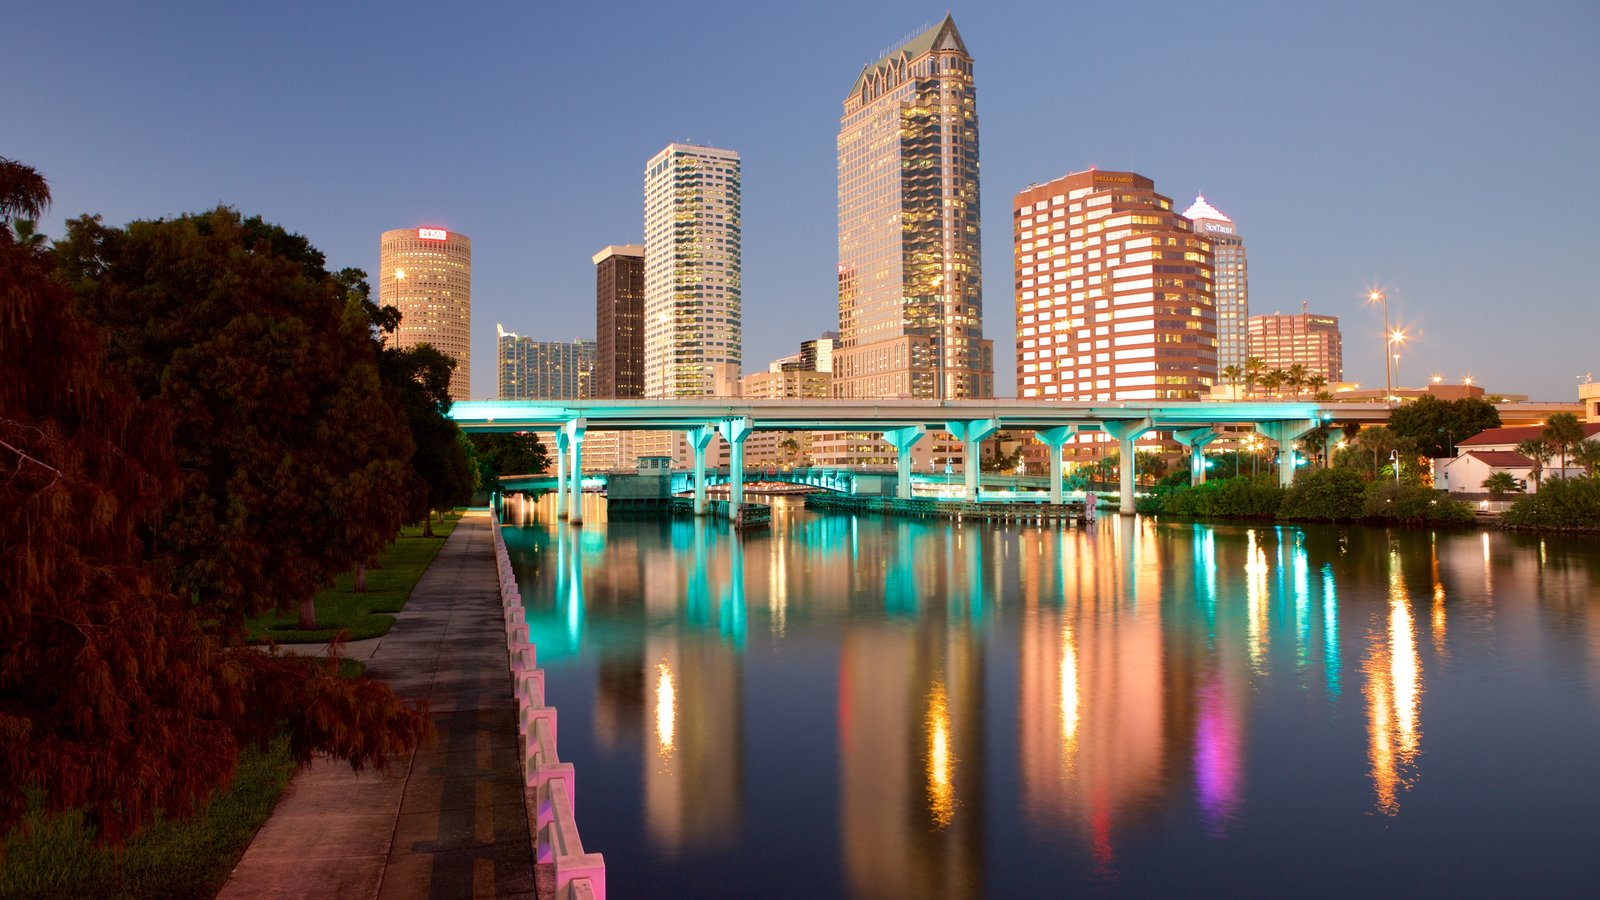 Tampa showing a bay or harbor, a city and night scenes